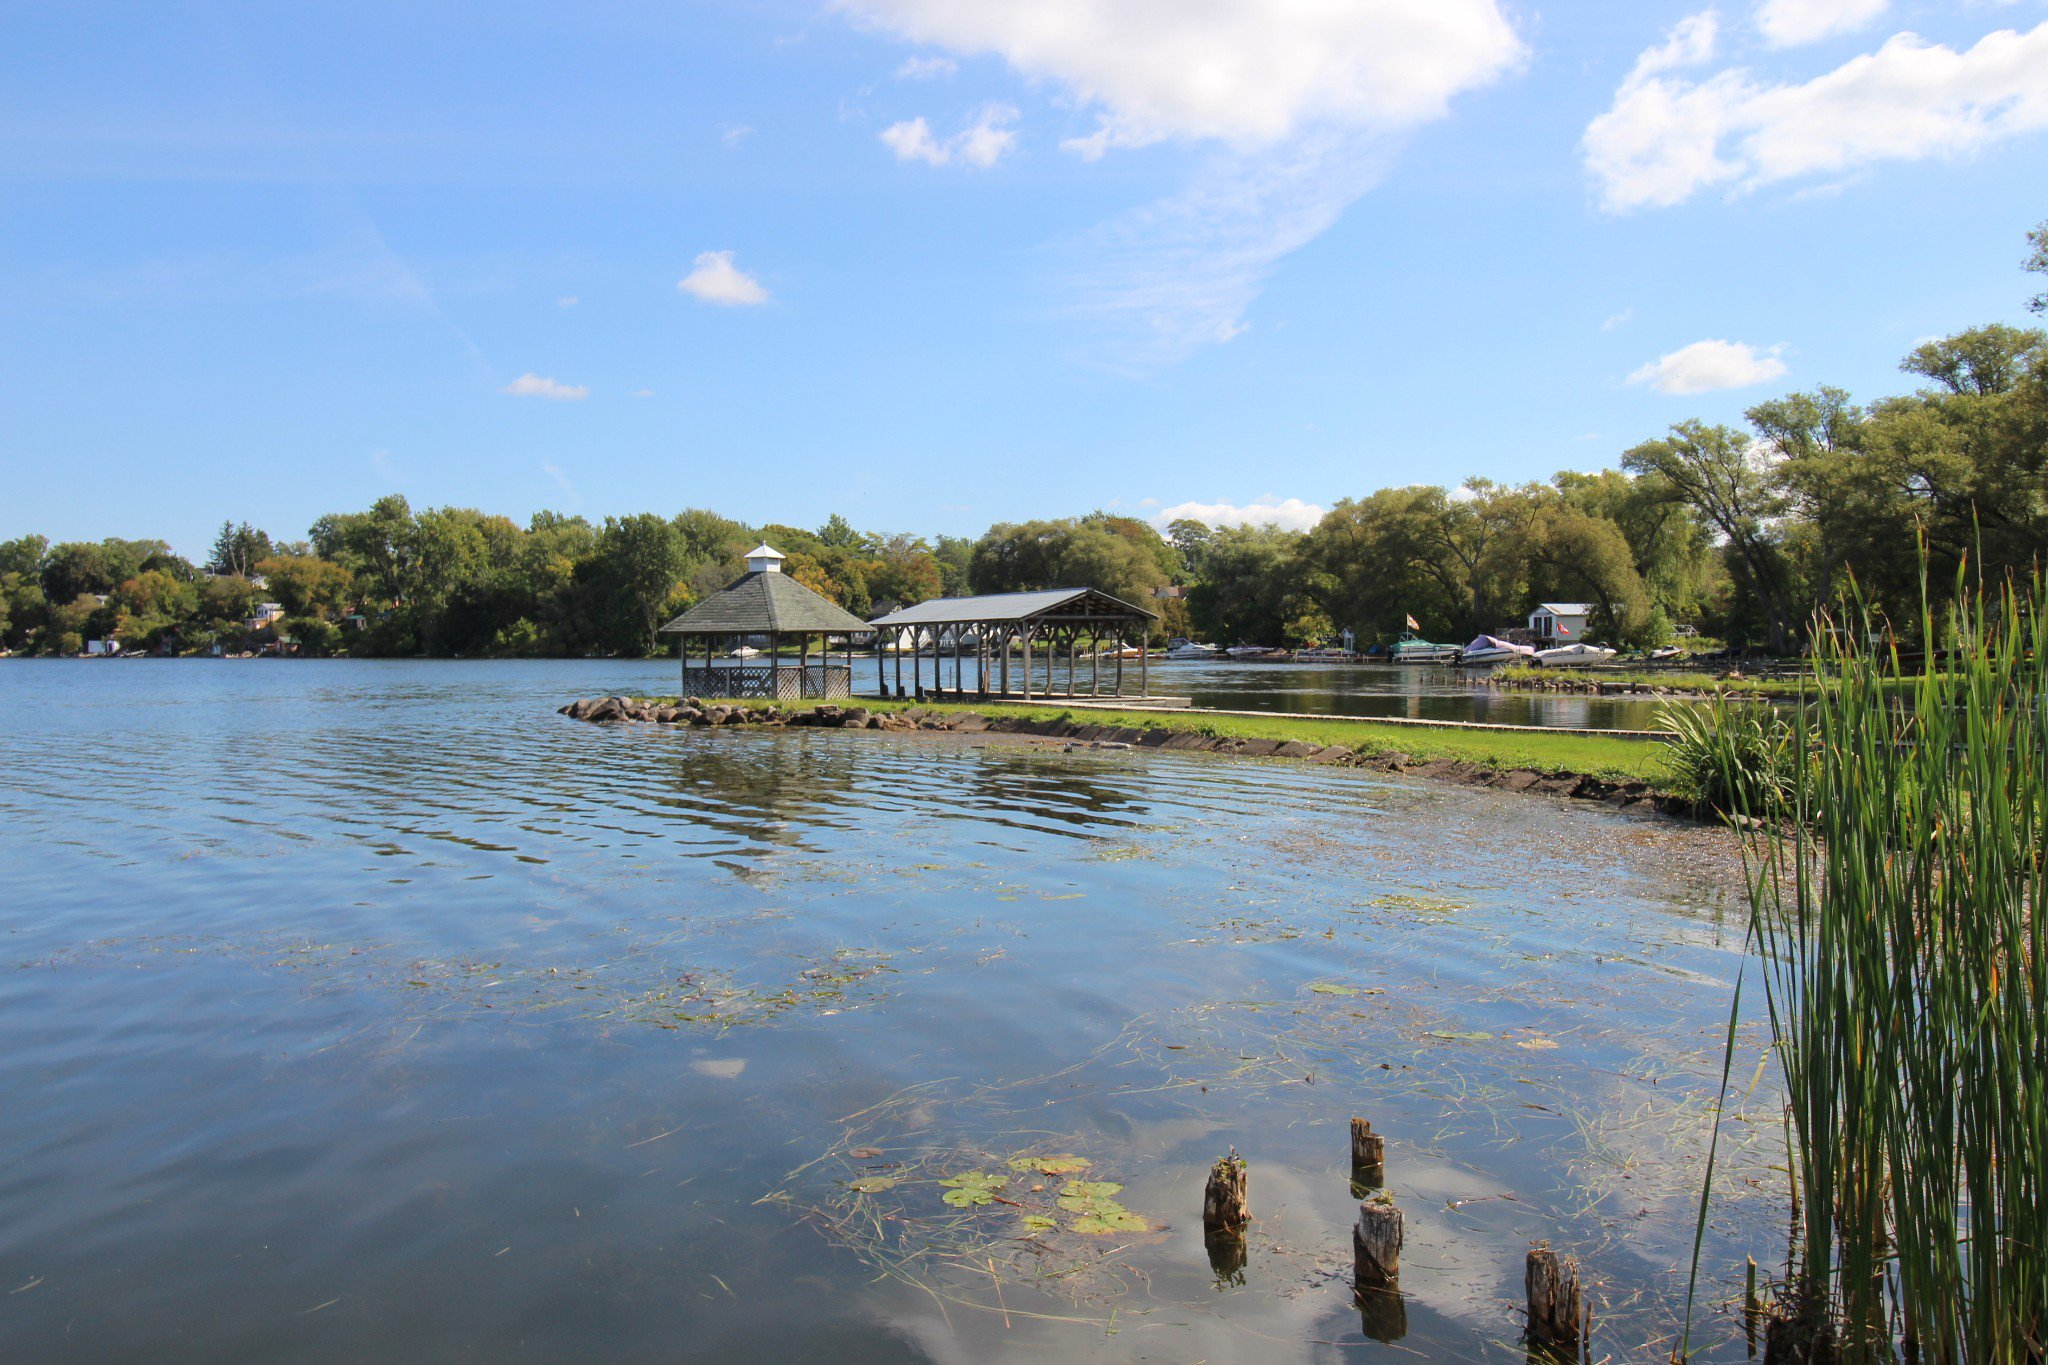 Photo 13: Photos: 6010 Rice Lake Scenic Drive in Harwood: Other for sale : MLS®# 223405